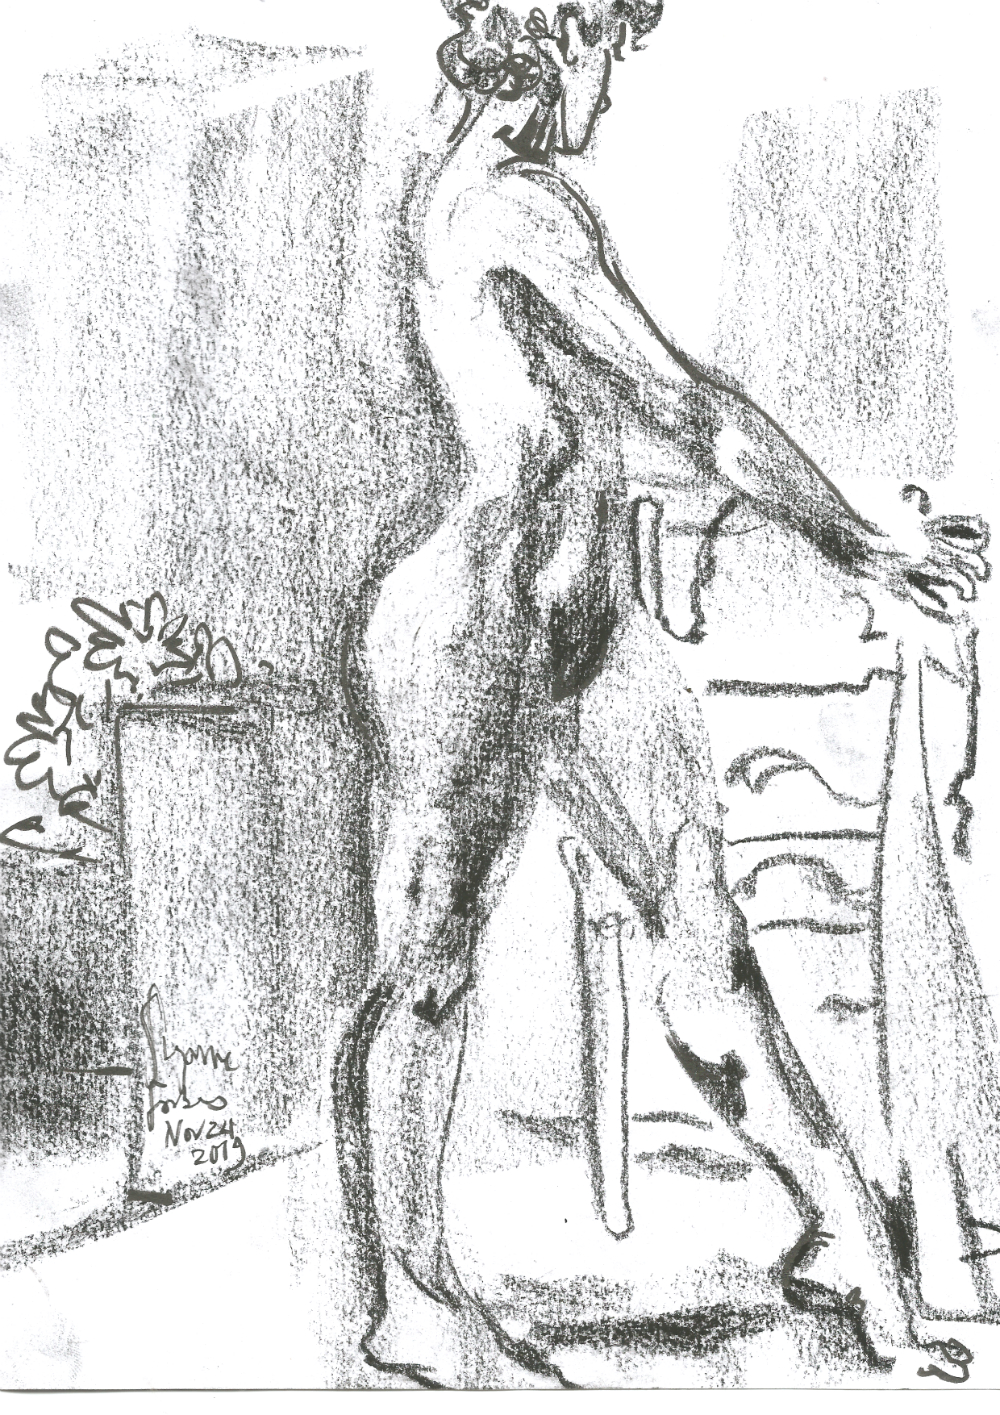 Liliana Velasquez 1 at Dr Sketchys Berlin Drink and Draw kunsthaus Nov 24 2019 by Suzanne Forbes